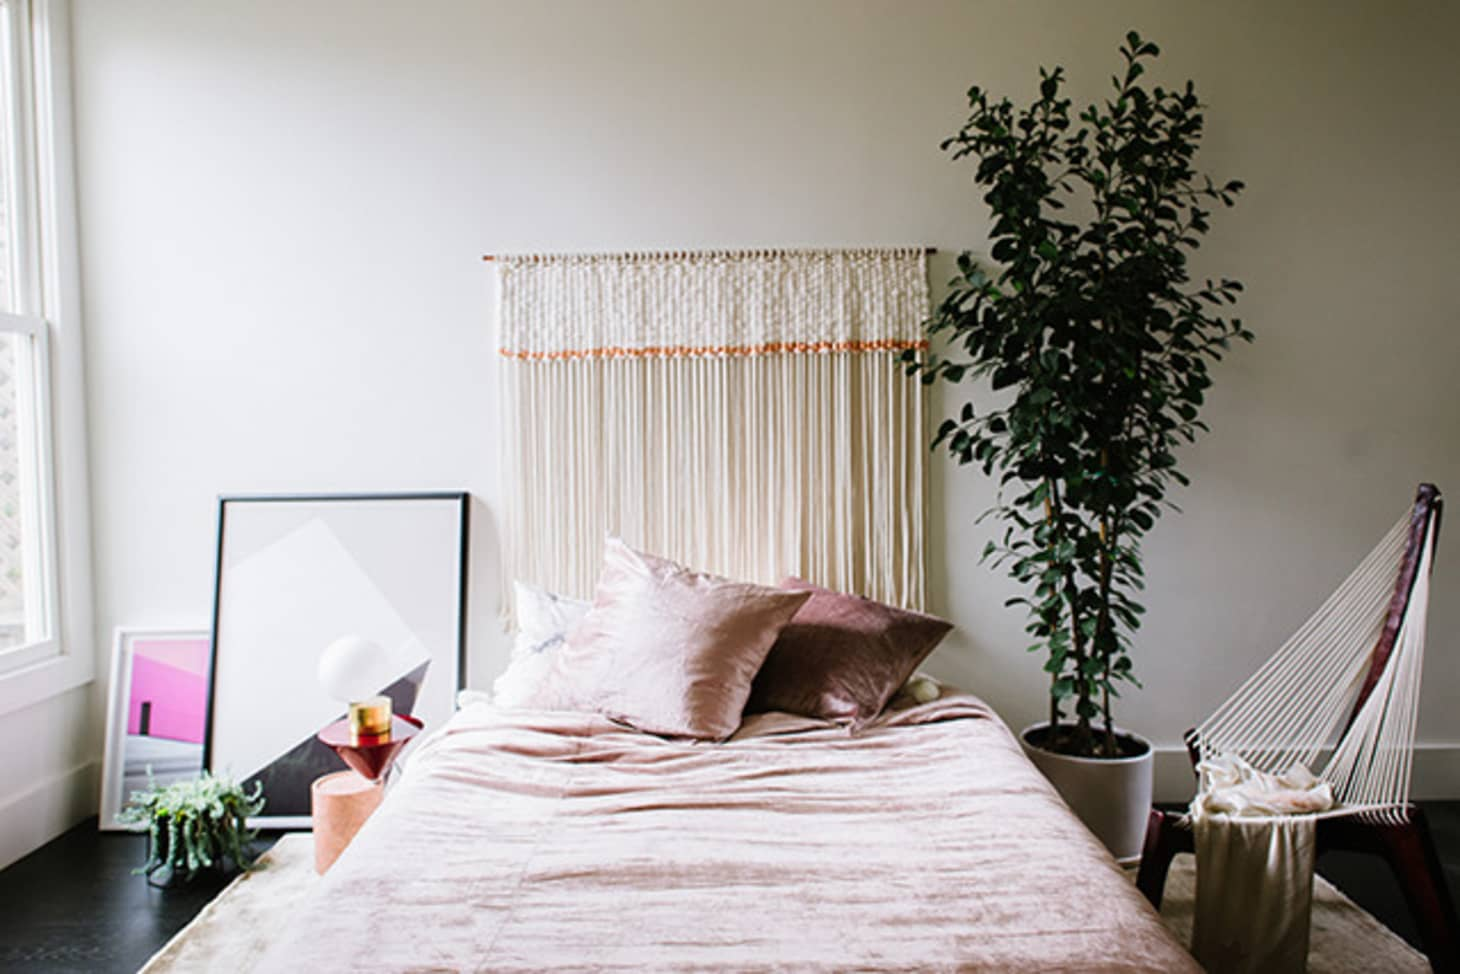 11 ideas for how to frame a bed without a headboard - Bed without headboard ideas ...